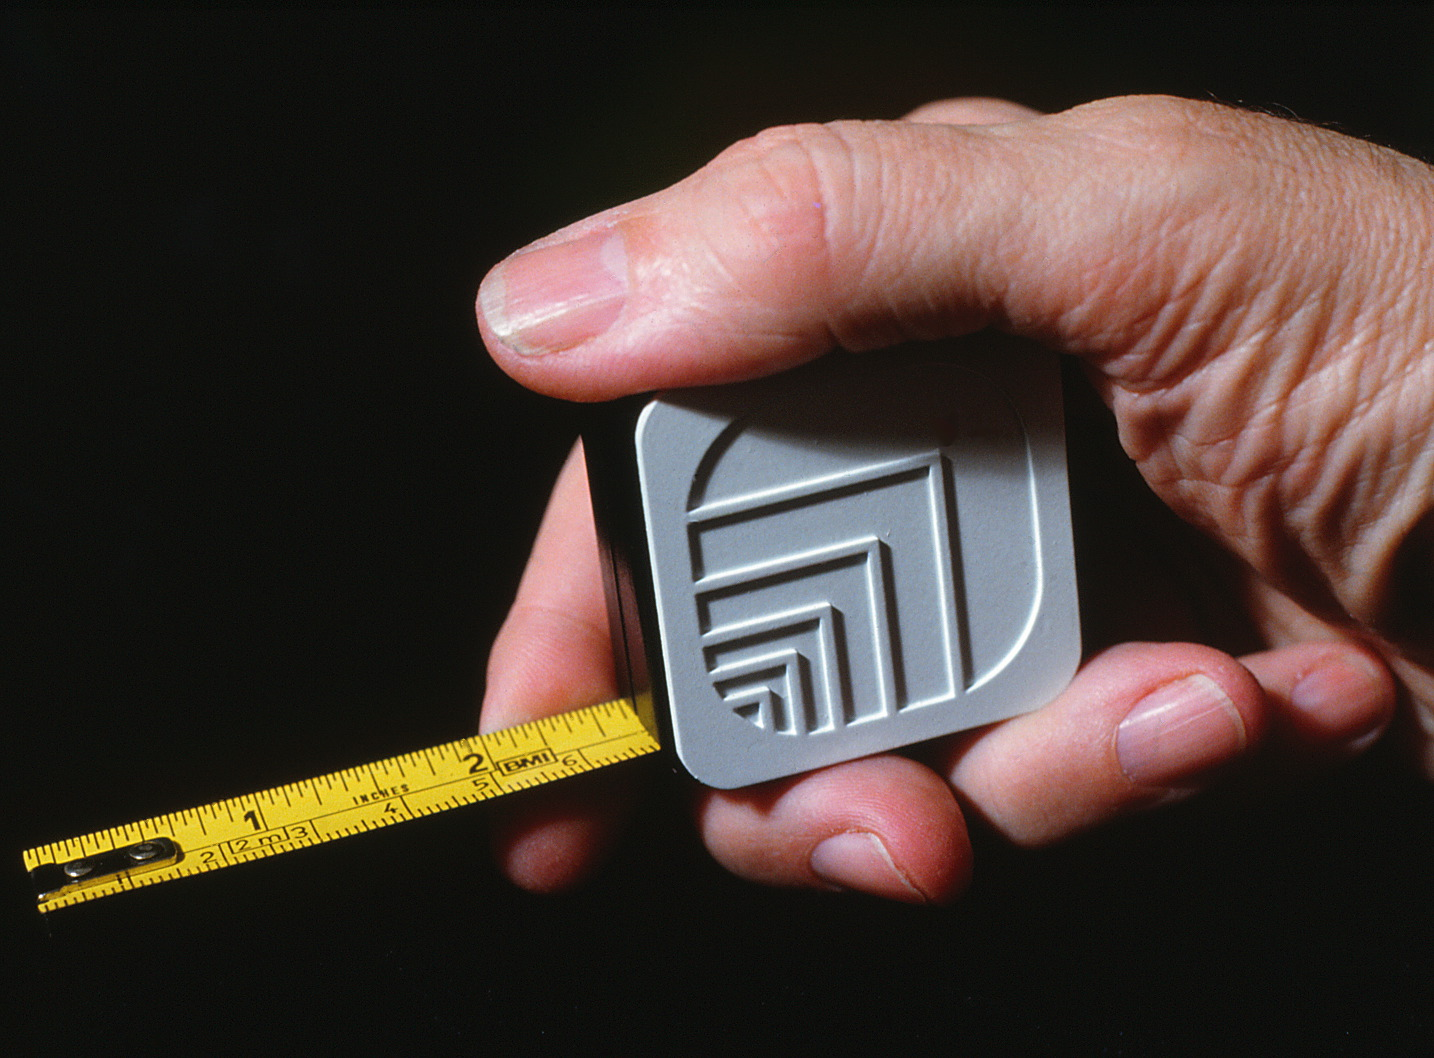 Hand holding a tape measure featuring Oxford logo.